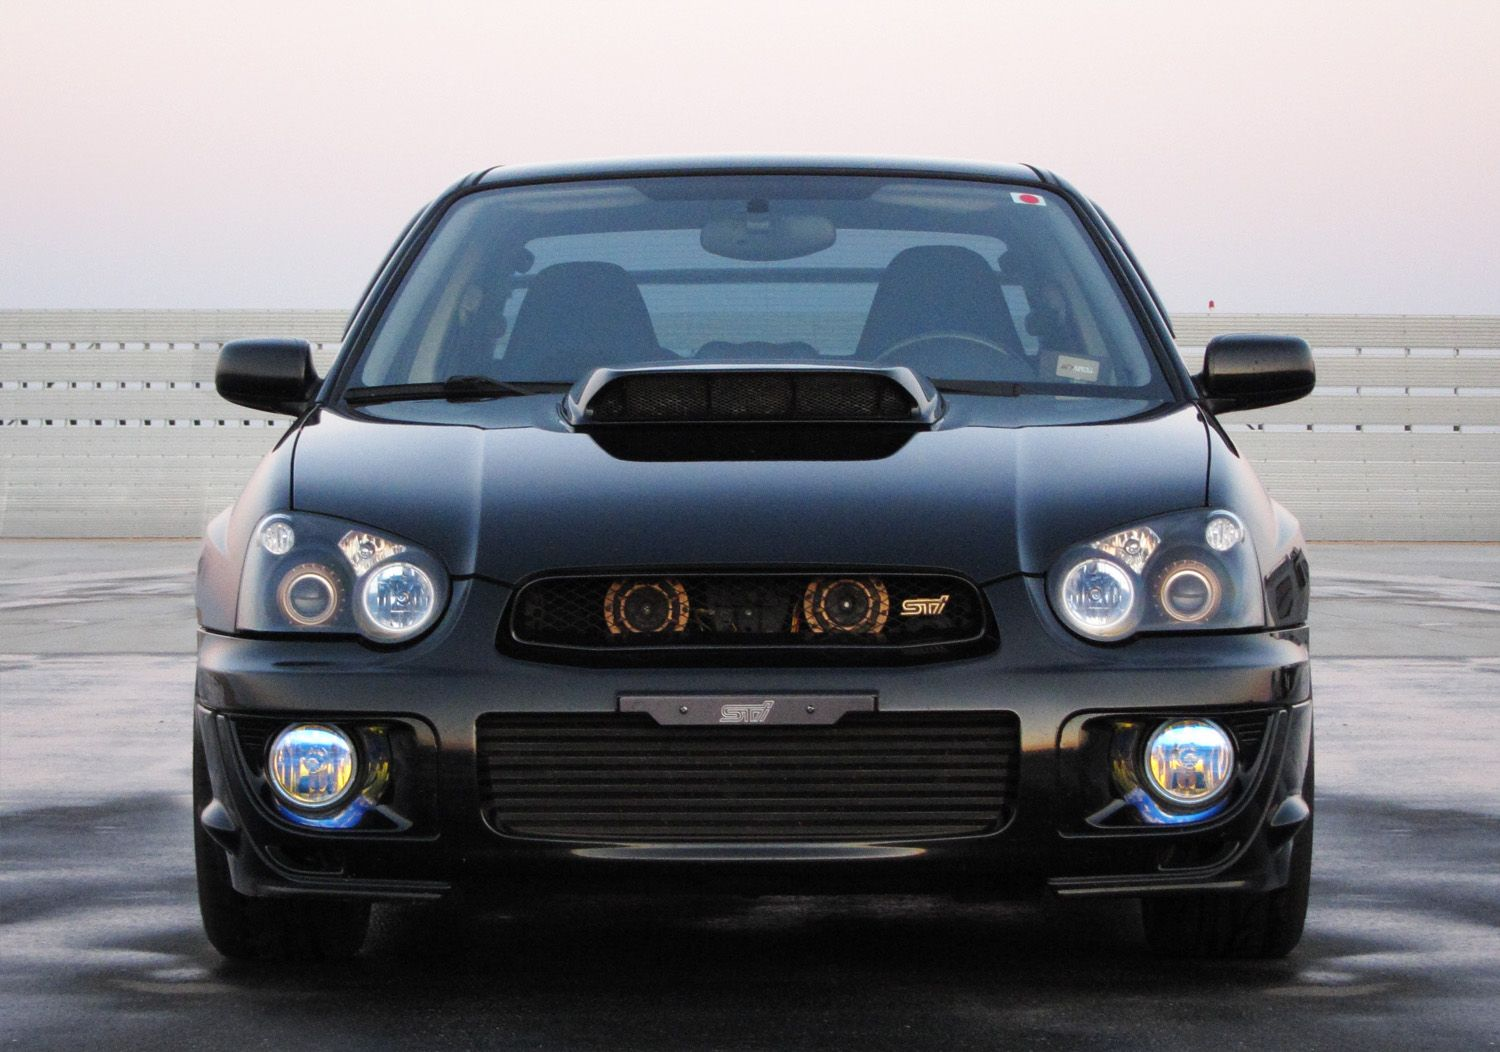 2005 Subaru Impreza Sti For Sale Marina Del Rey California